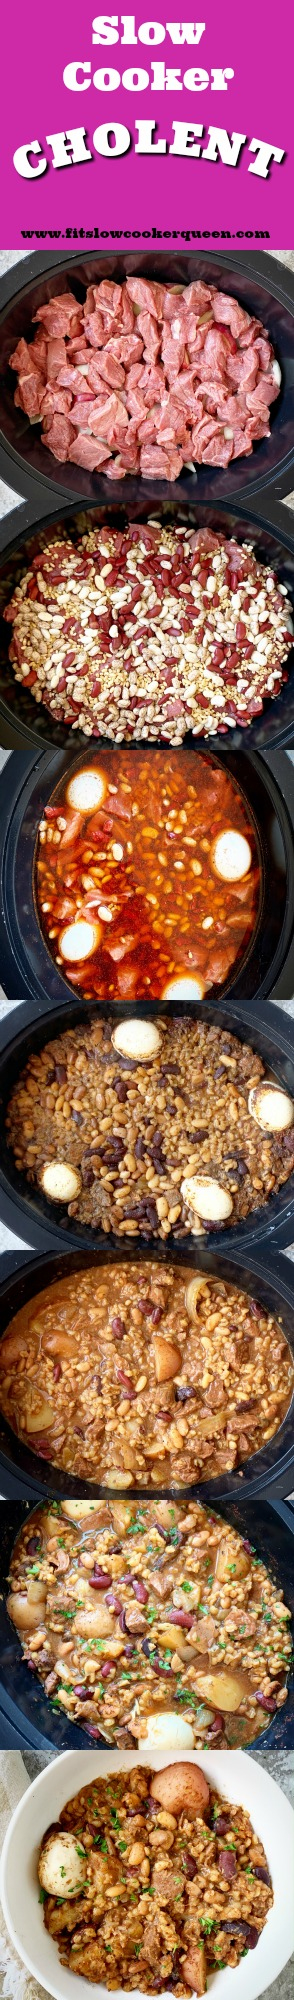 another pinterest pin for Slow Cooker Cholent